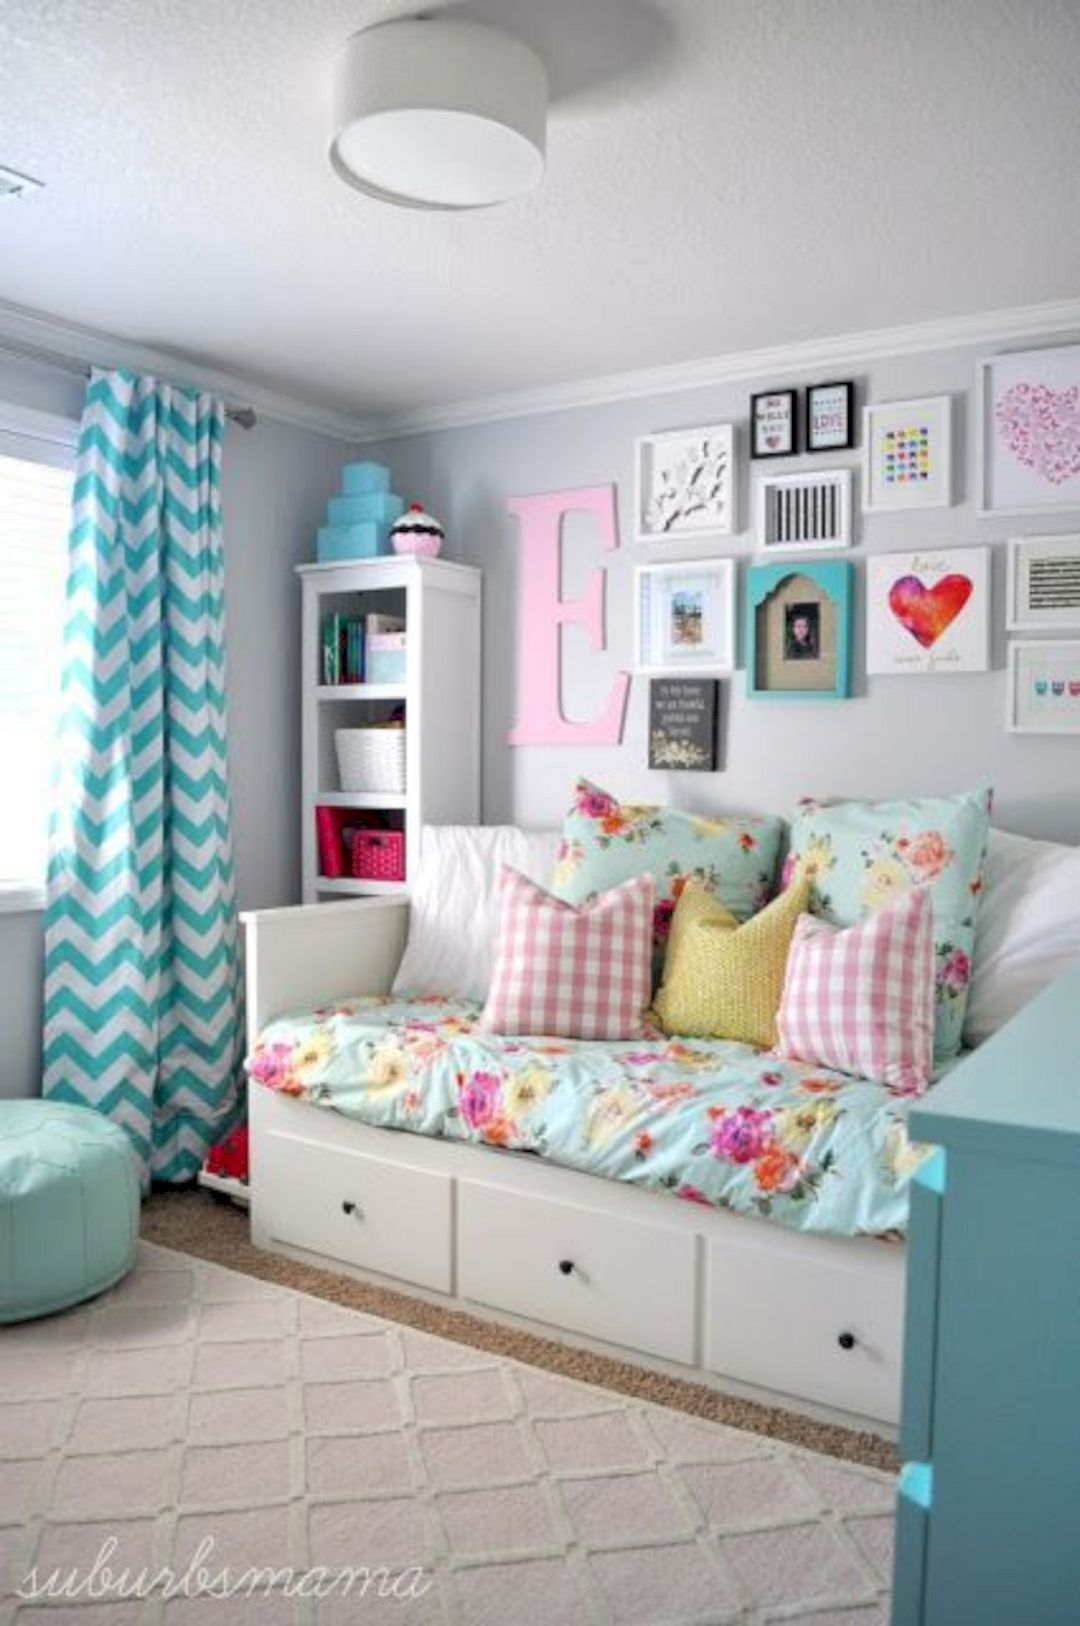 Etonnant Awesome Teen Bedroom Interior Ideas  Https://www.futuristarchitecture.com/23866 Awesome Teen Bedroom  Interior Ideas.html